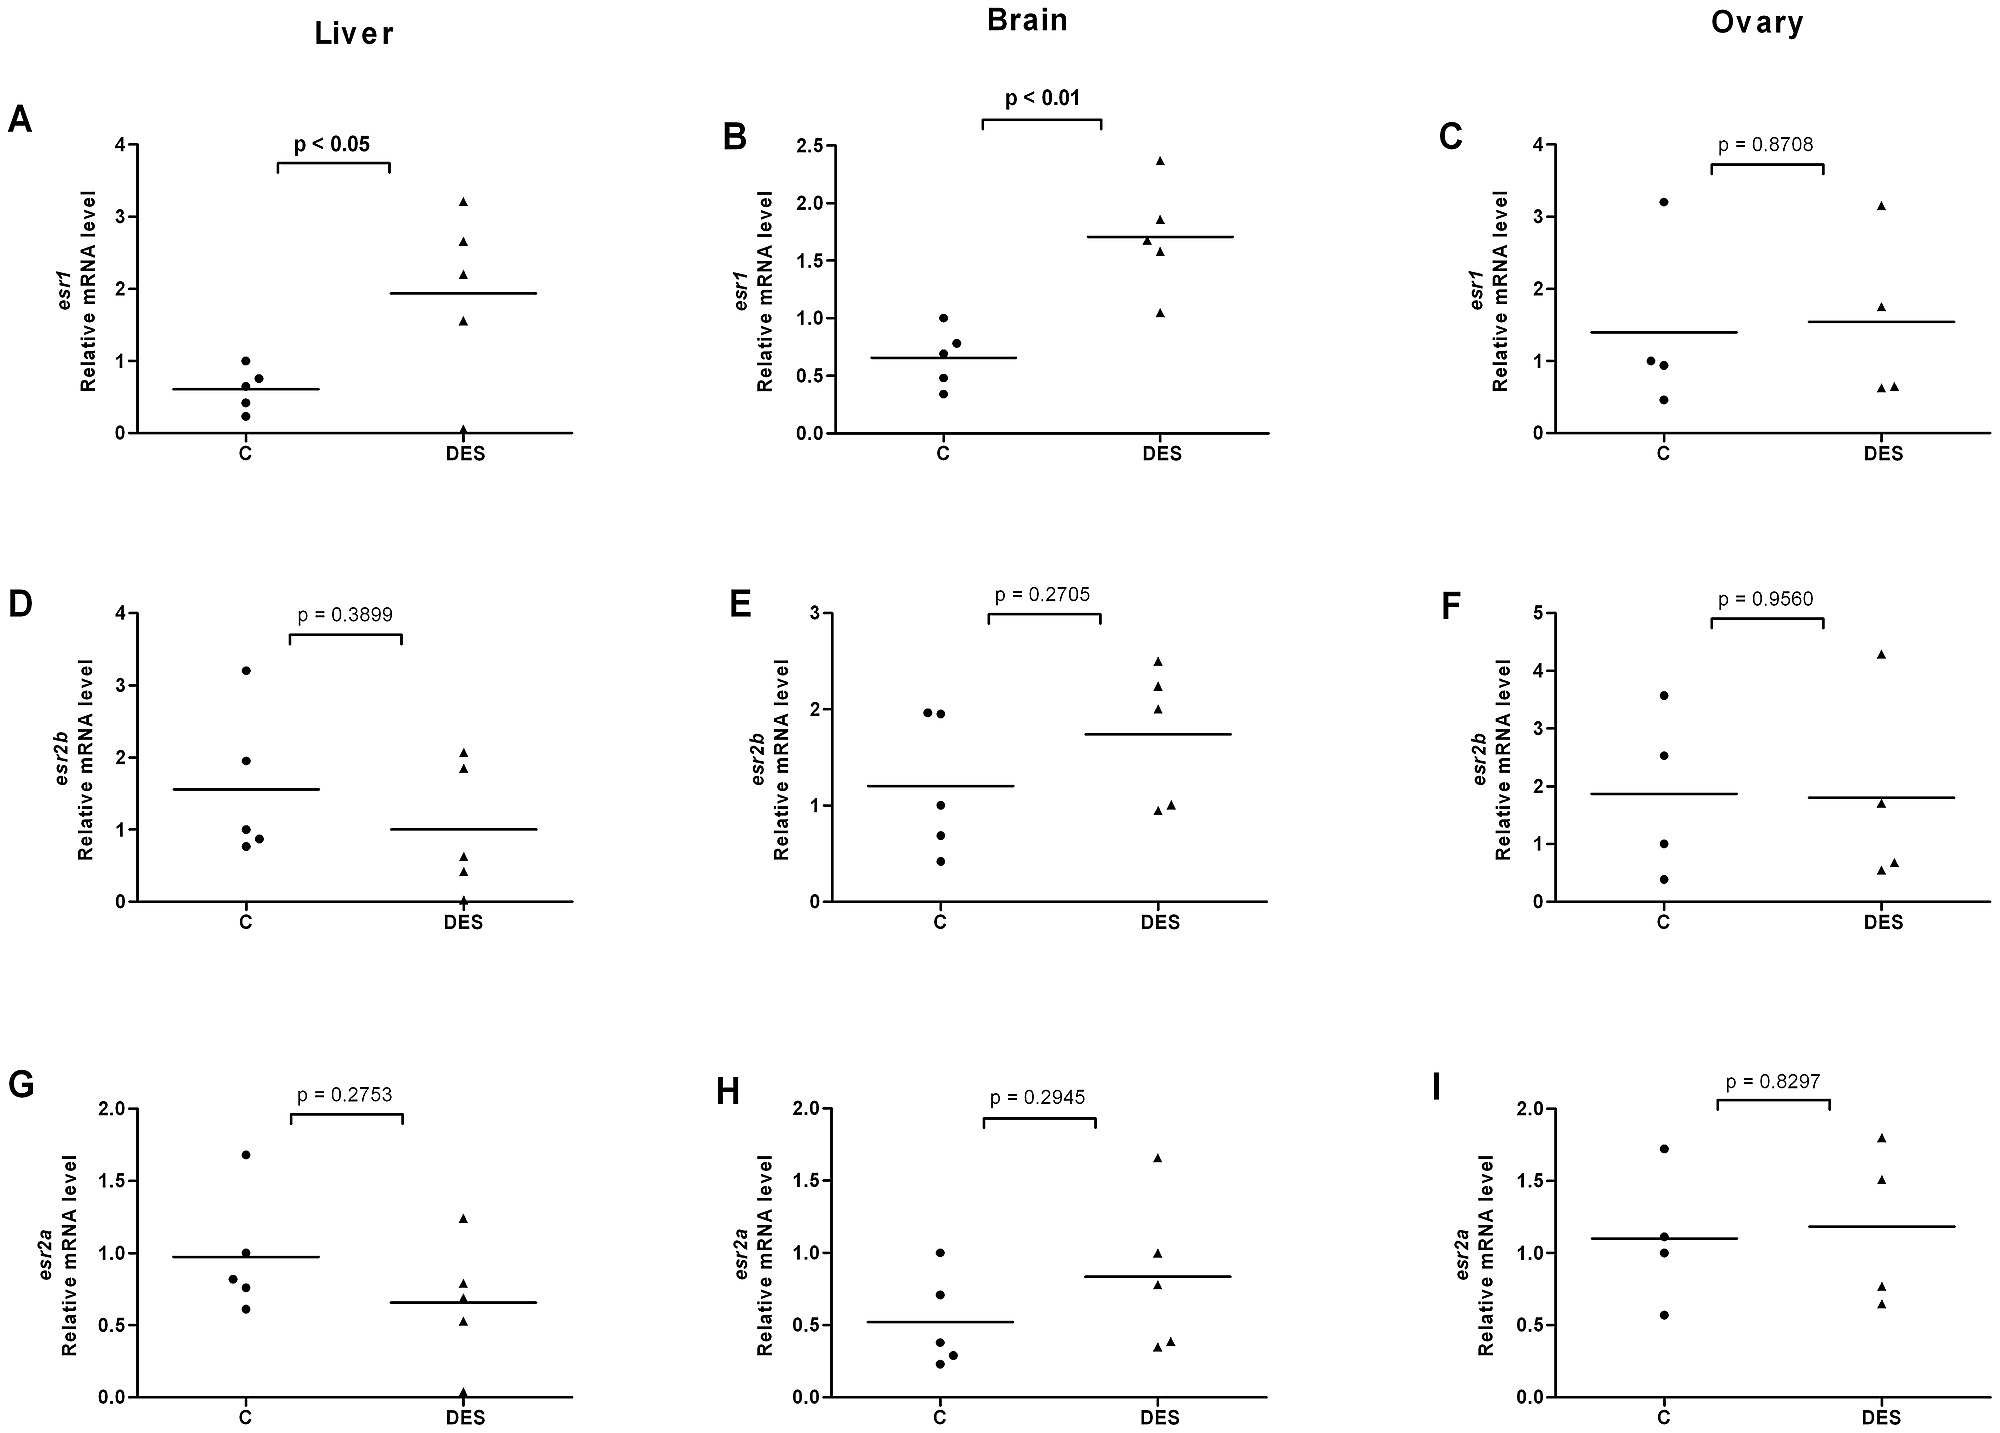 hight resolution of effects of diethylstilbestrol on esr expression in liver brain and ovary of female fish